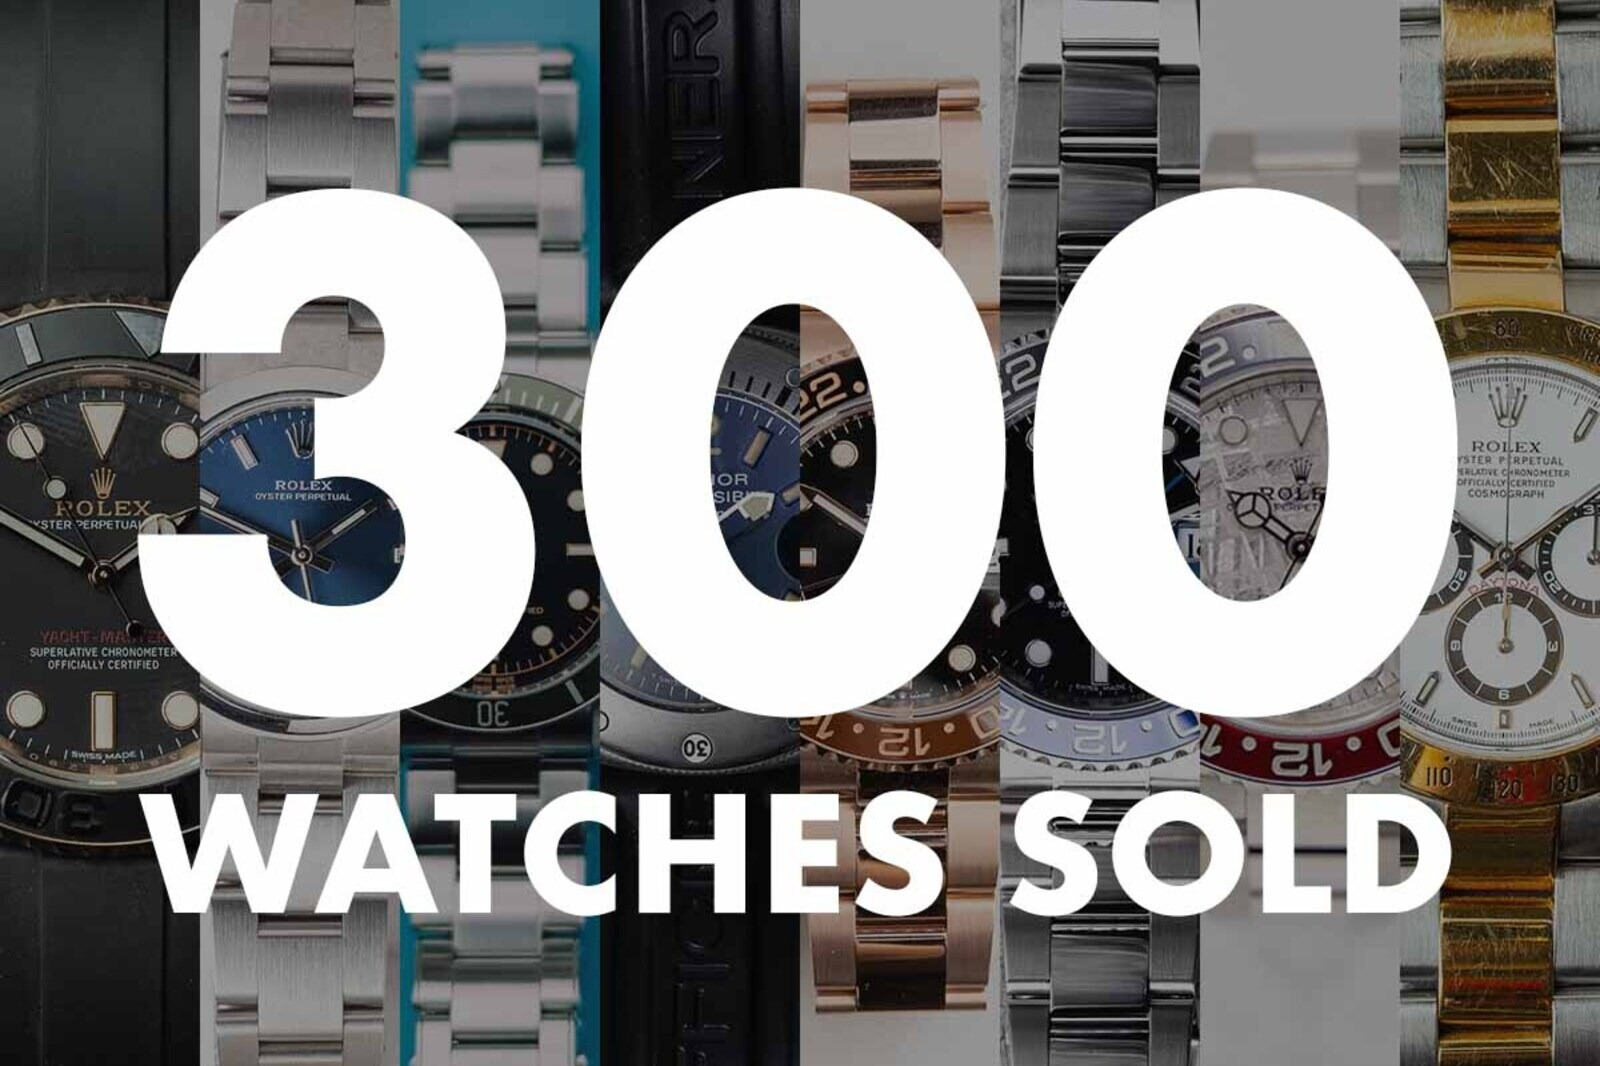 300 Watches Sold